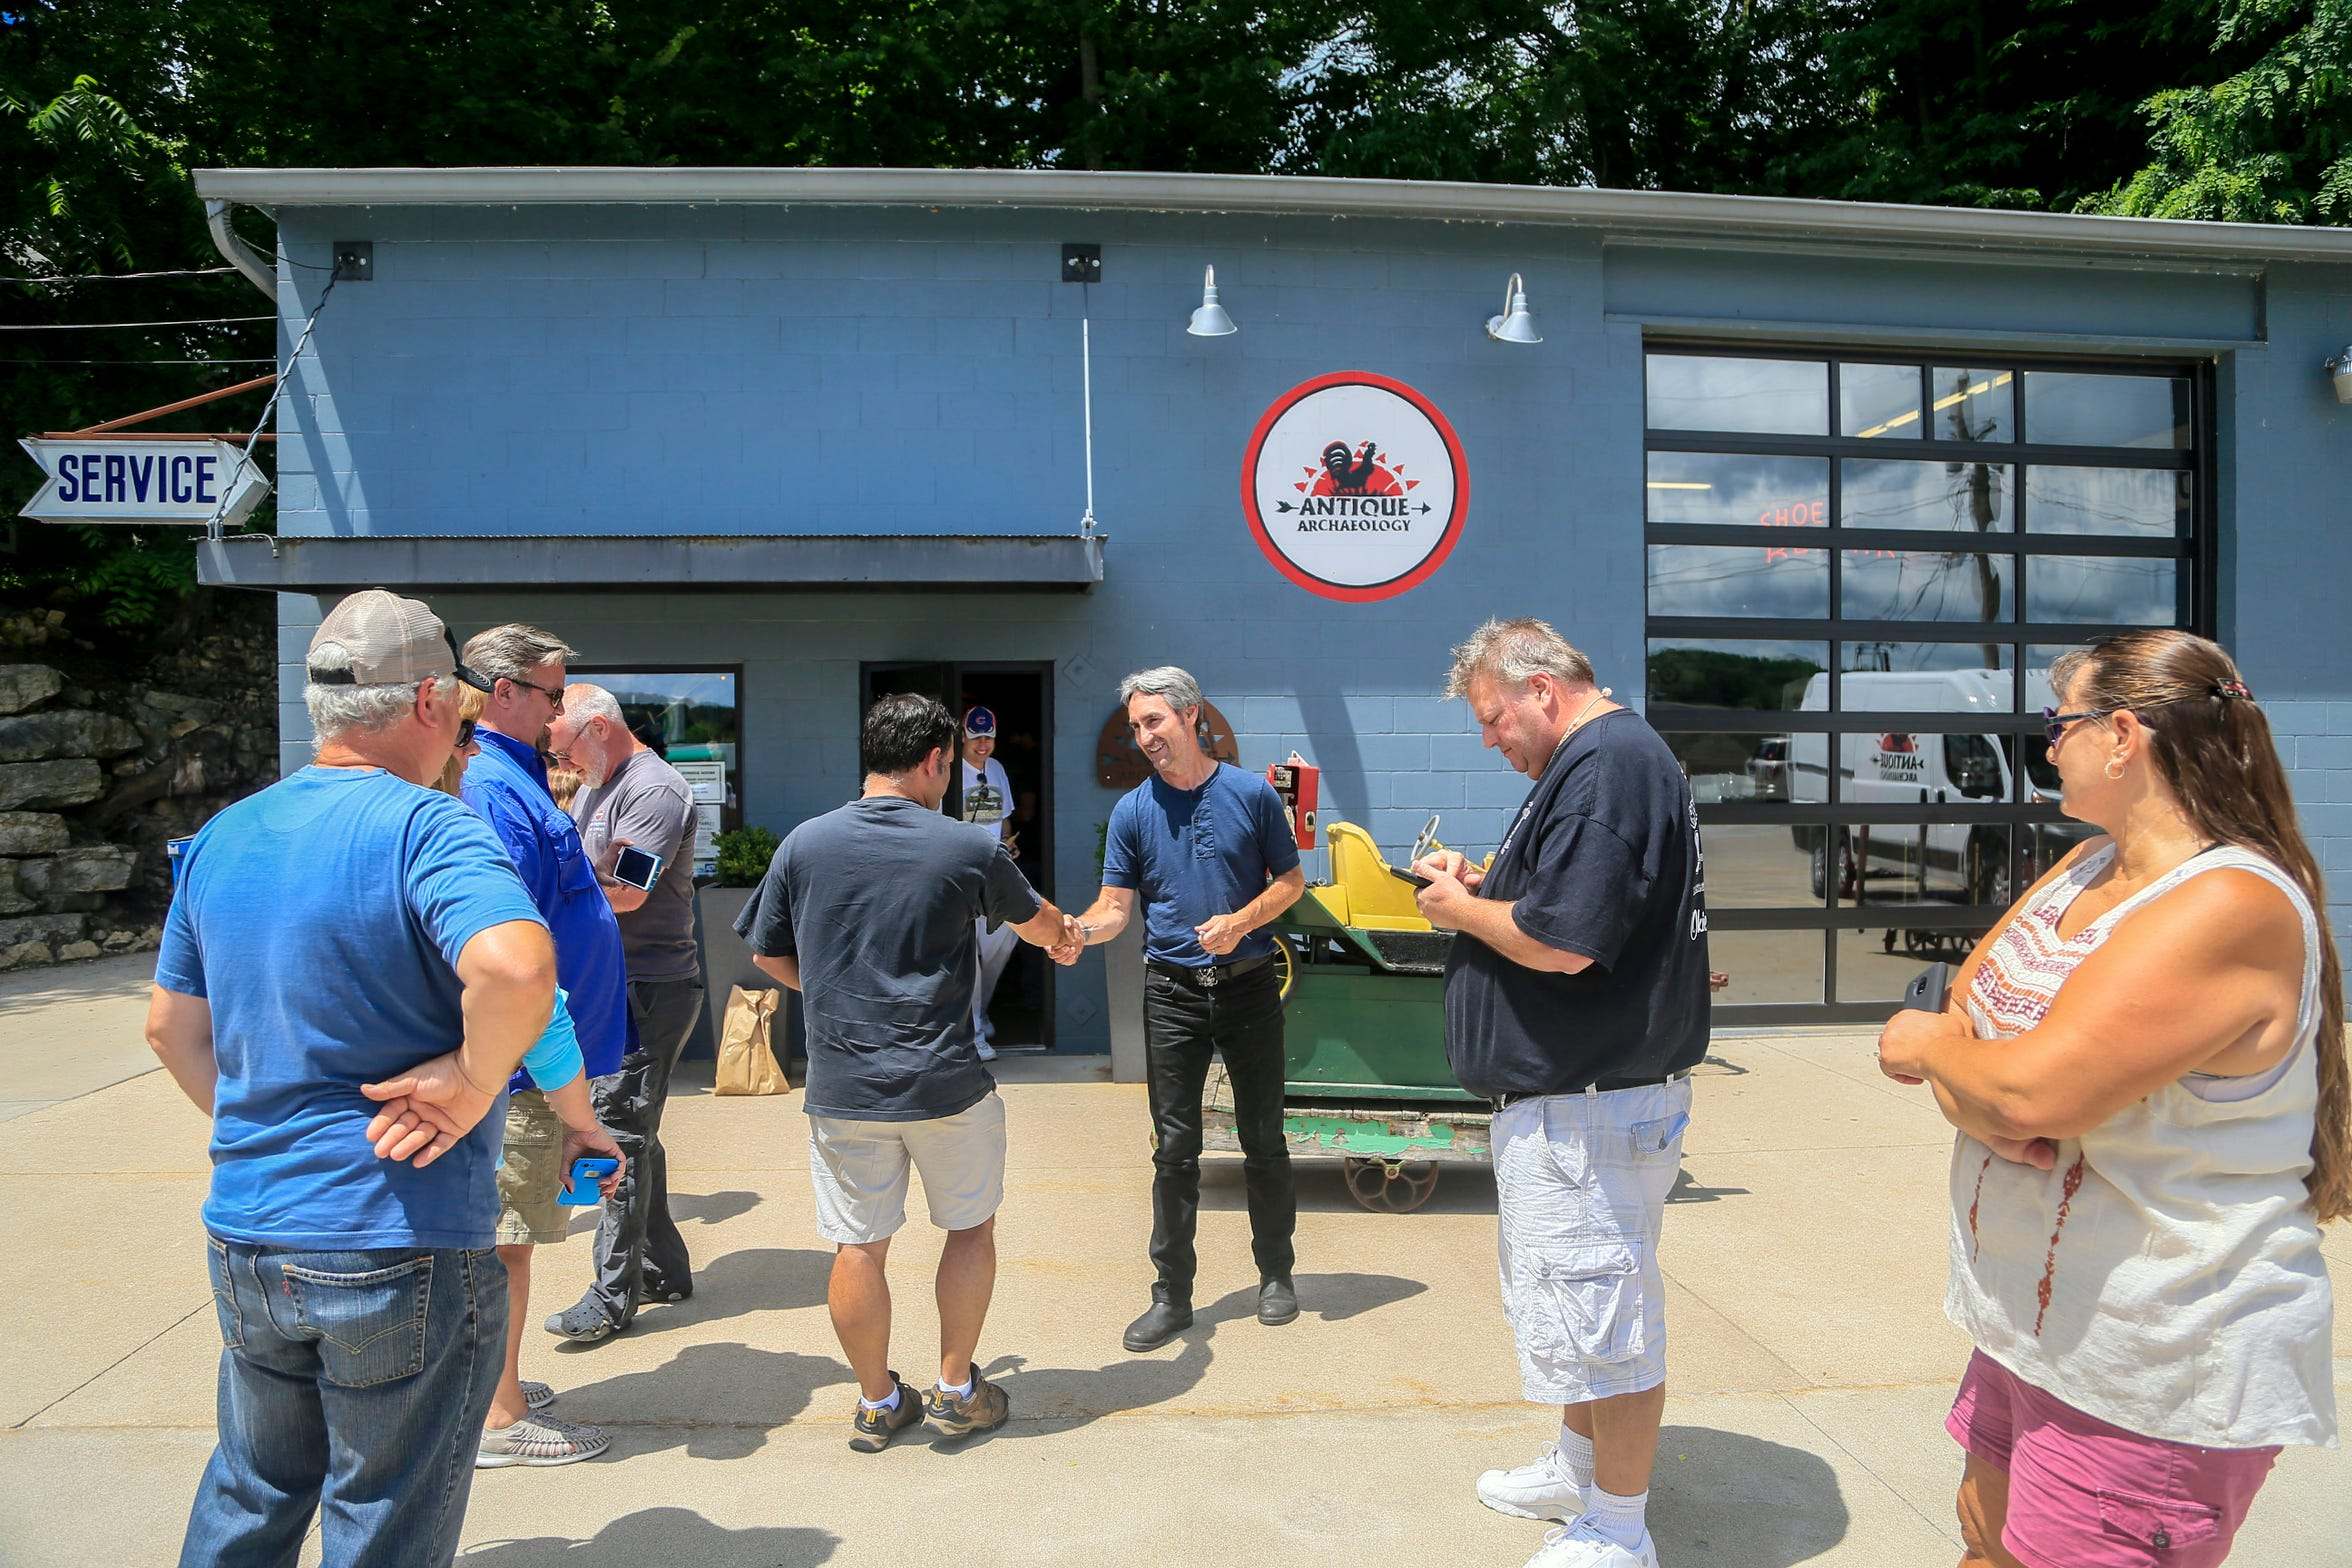 Celebrity Culture: Mike Wolfe of American Pickers fame greets fans outside his store Antique Archaeology in LeClaire June 27, 2018.